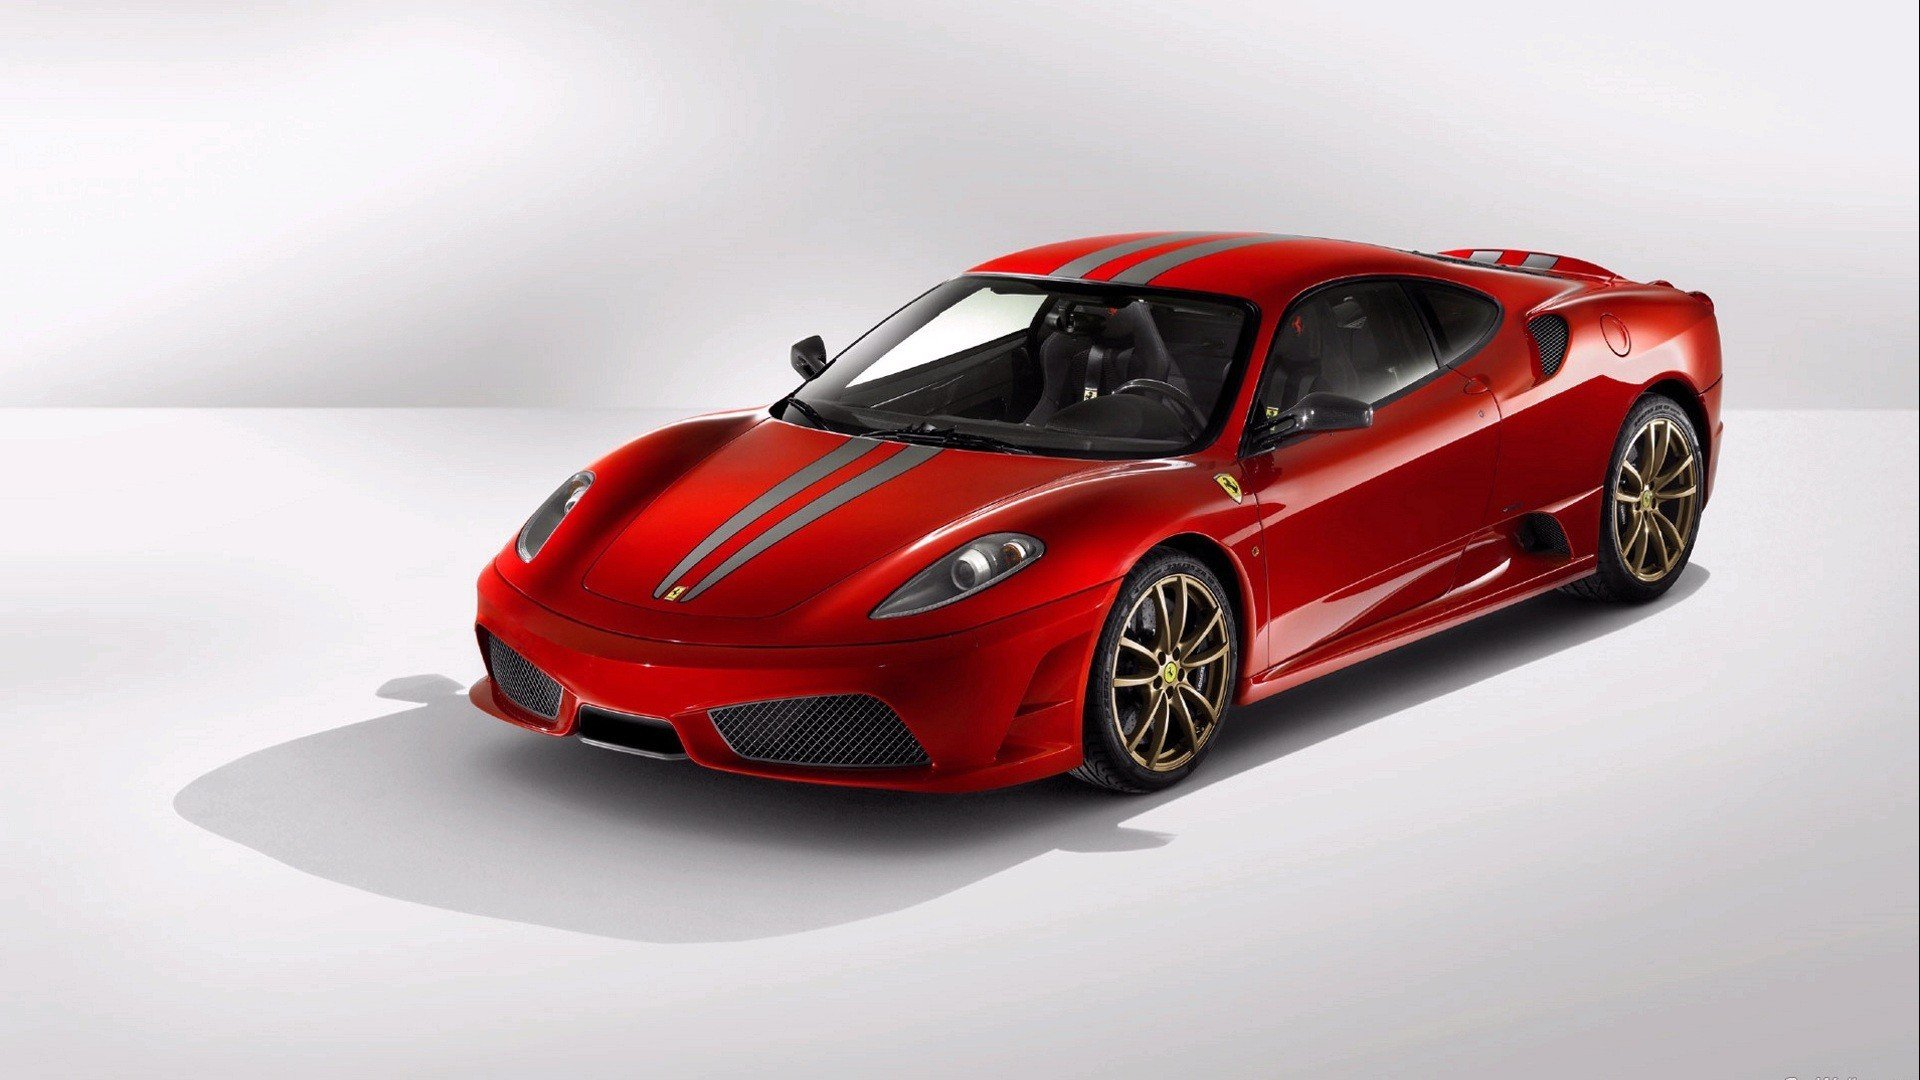 Red Ferrari F430 Wallpaper Wide